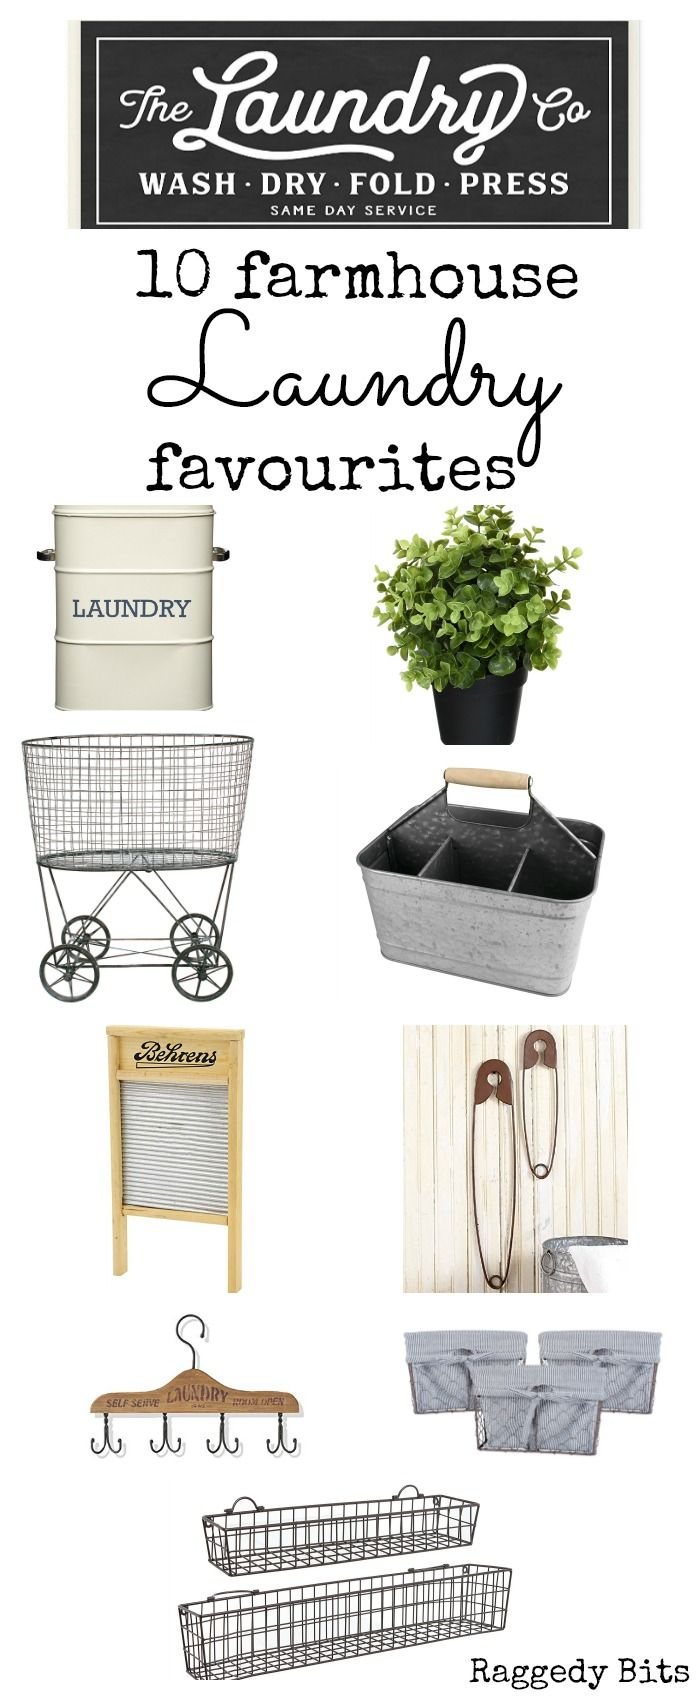 After recently moving into our new home the plans for sprucing up our old laundry got thrown out the window. With a completely space new inspiration was needed. Sharing 10 Farmhouse Laundry Favourites | www.raggedy-bits.com